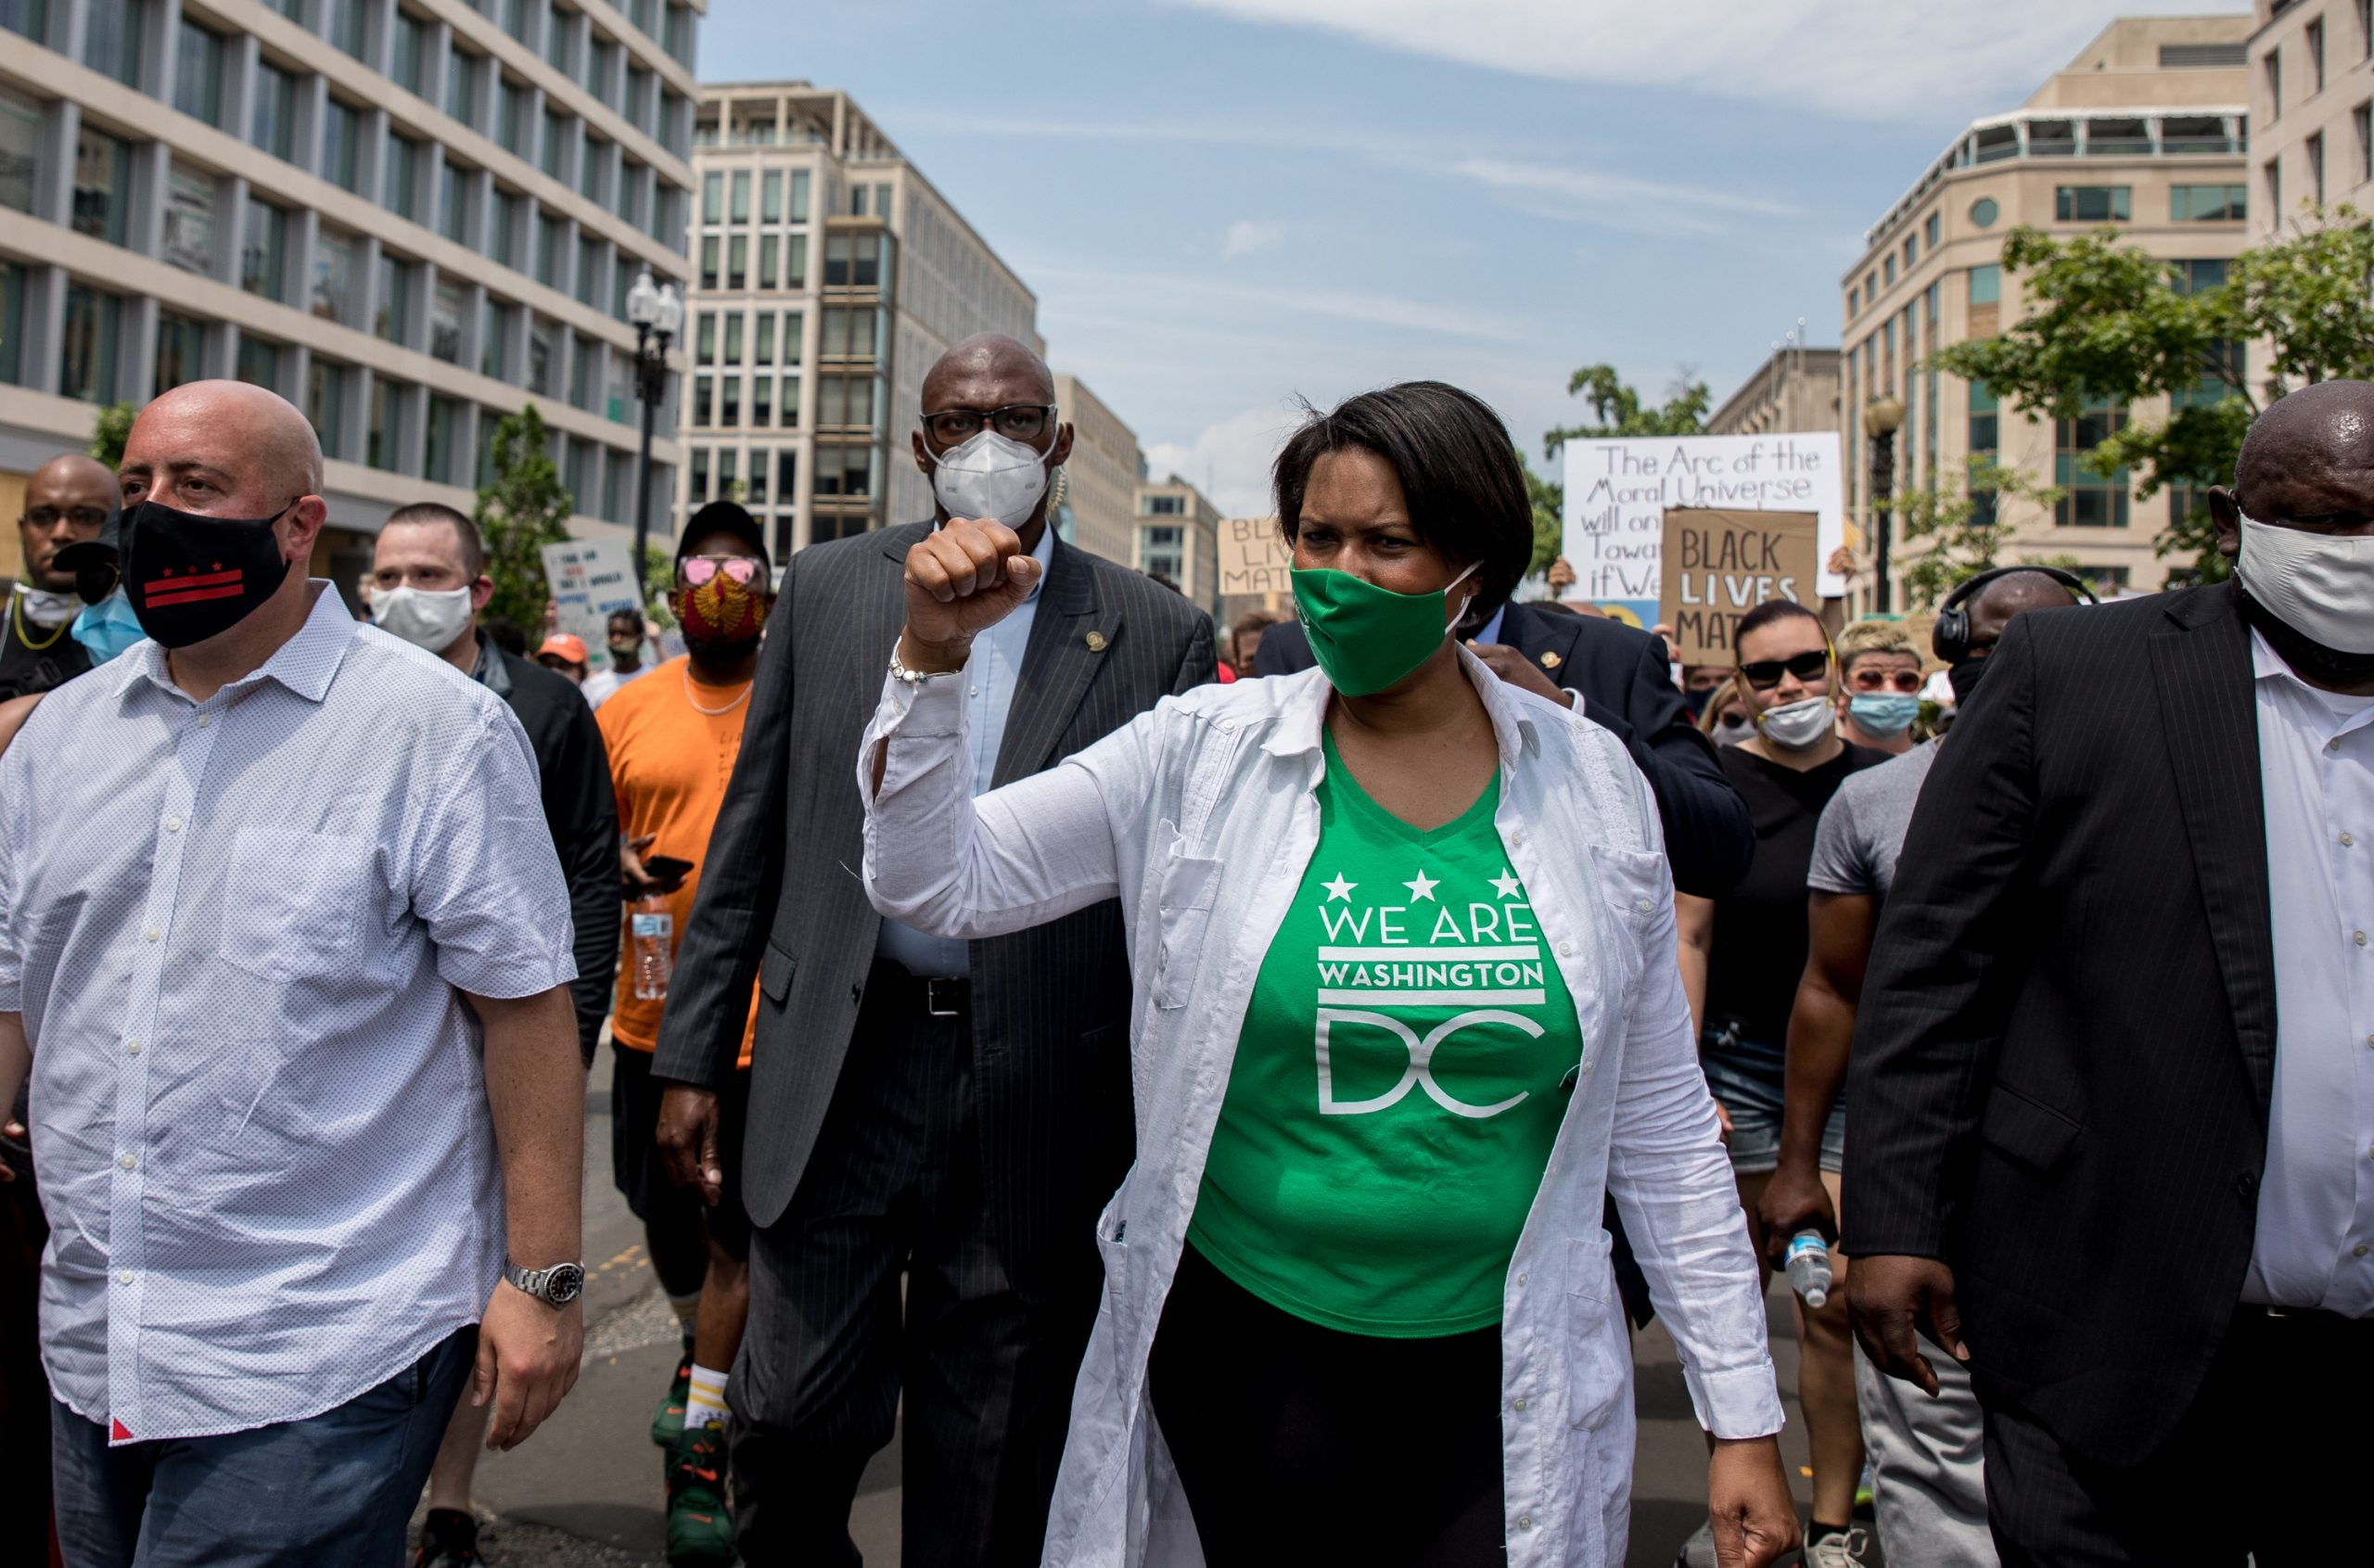 WASHINGTON,DC-JUNE6: Mayor Muriel Bowser walks down 16th Street, a portion of which was recently renamed Black Lives Matter Plaza, during the 9th day of protests on 16th Street outside of the White House in Washington, DC, June 6, 2020. (Photo by Evelyn Hockstein/For The Washington Post via Getty Images)